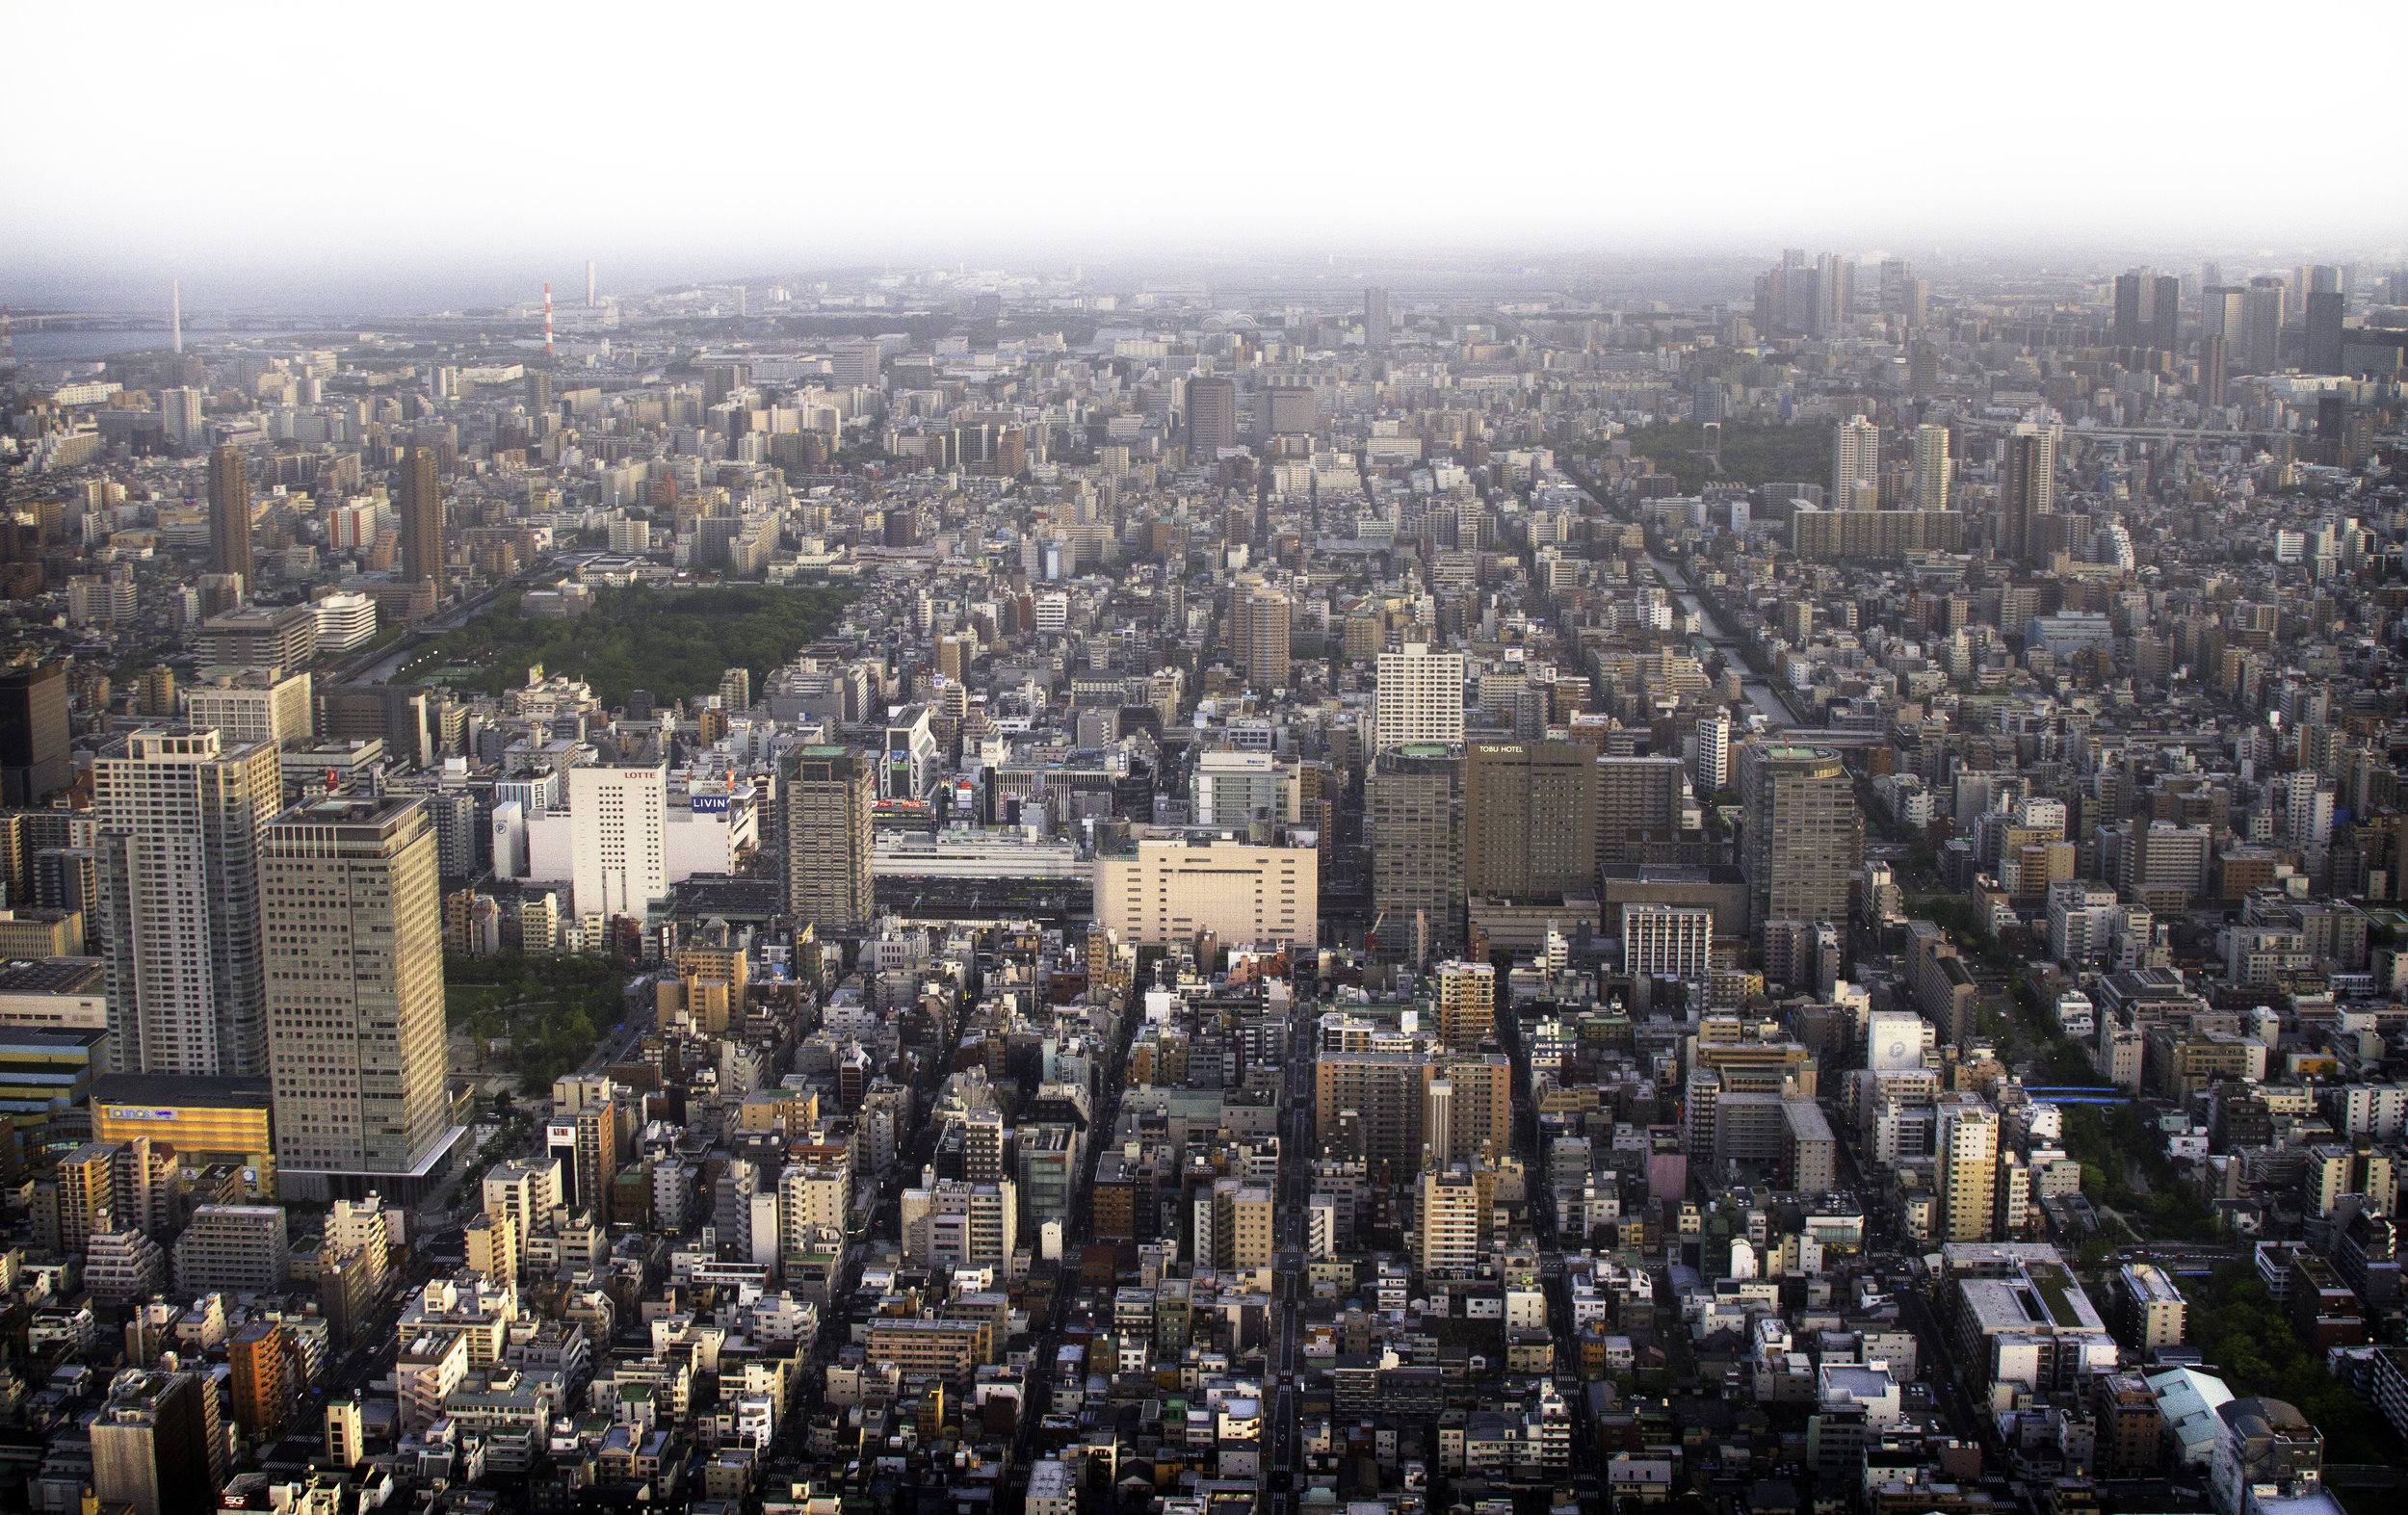 Skytree_View1.jpg